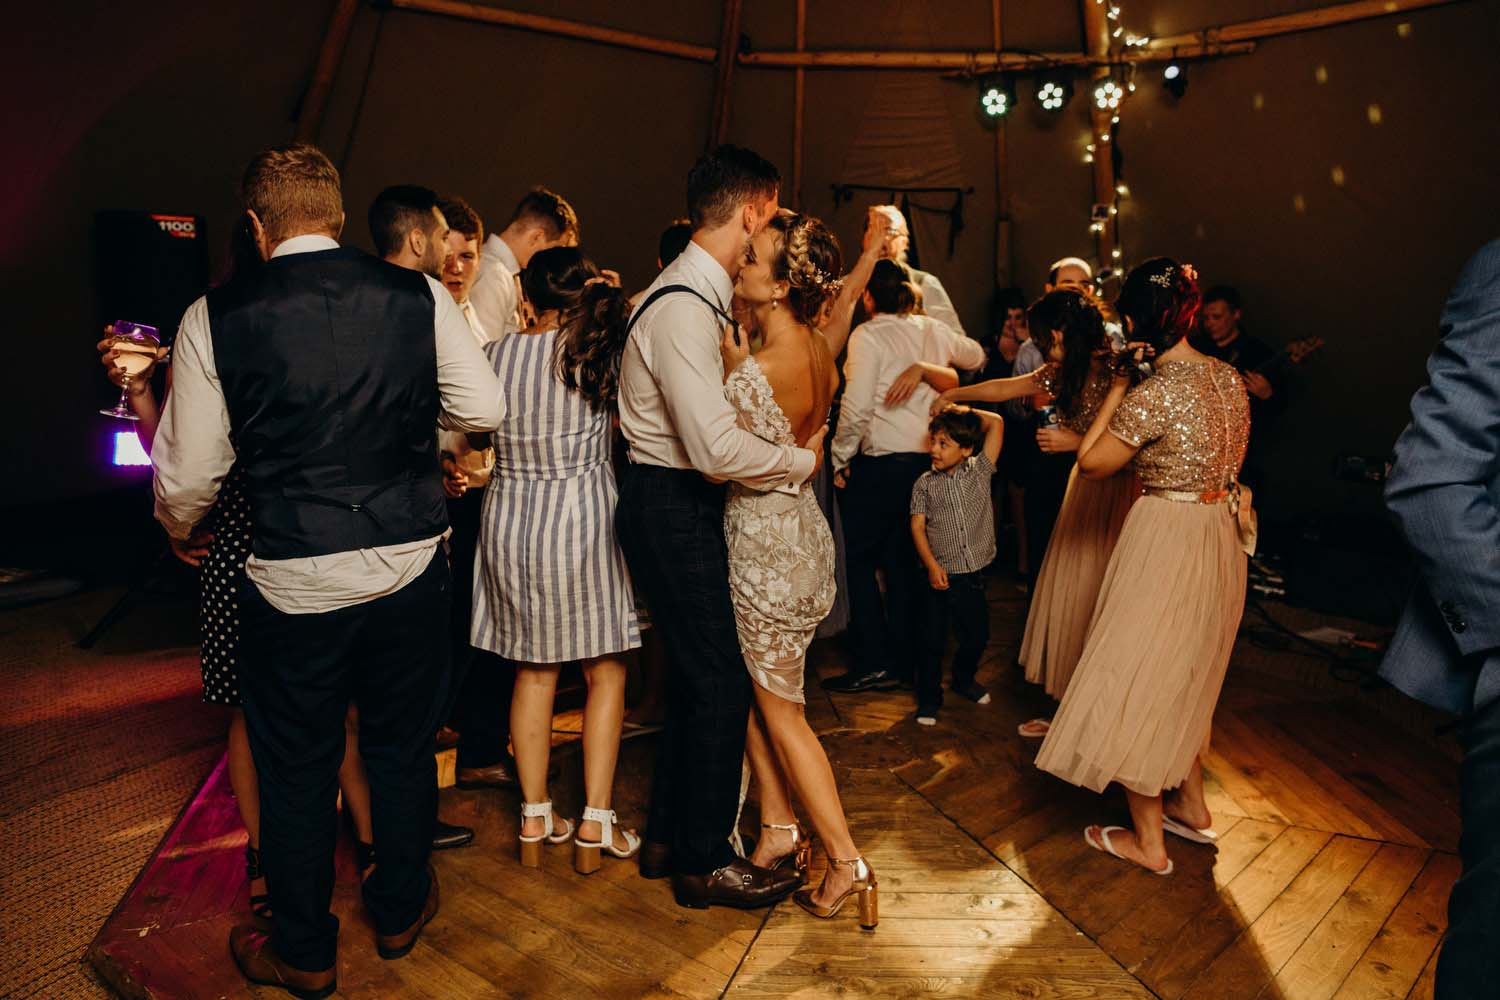 Bride and groom dance in tipi